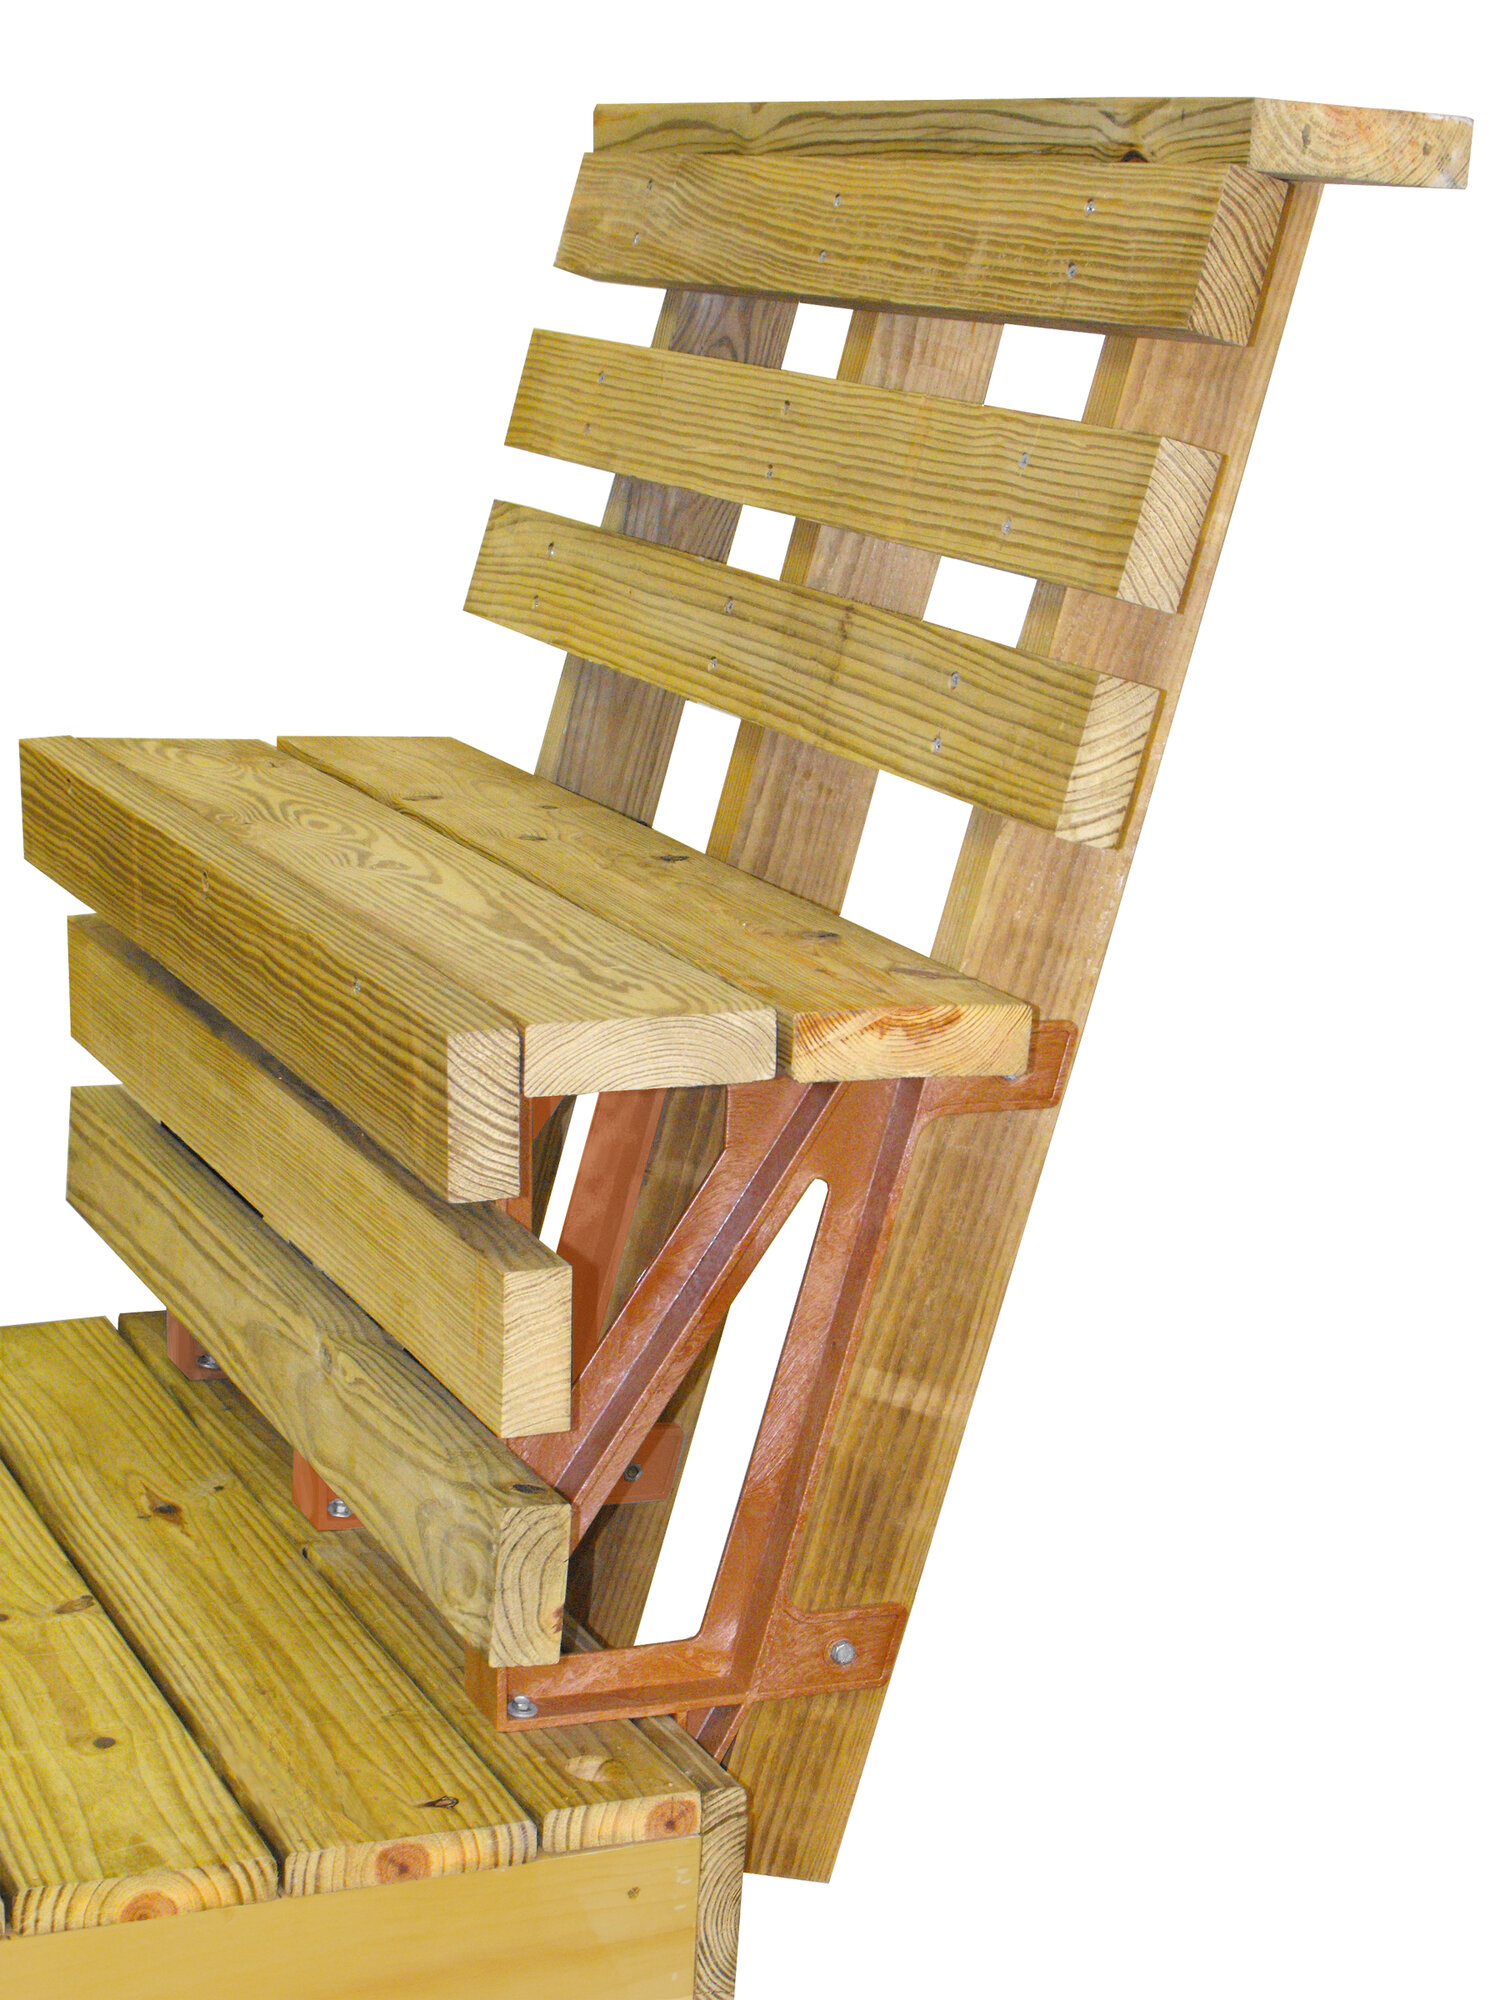 2x4 Basics Deck Bench Bracket